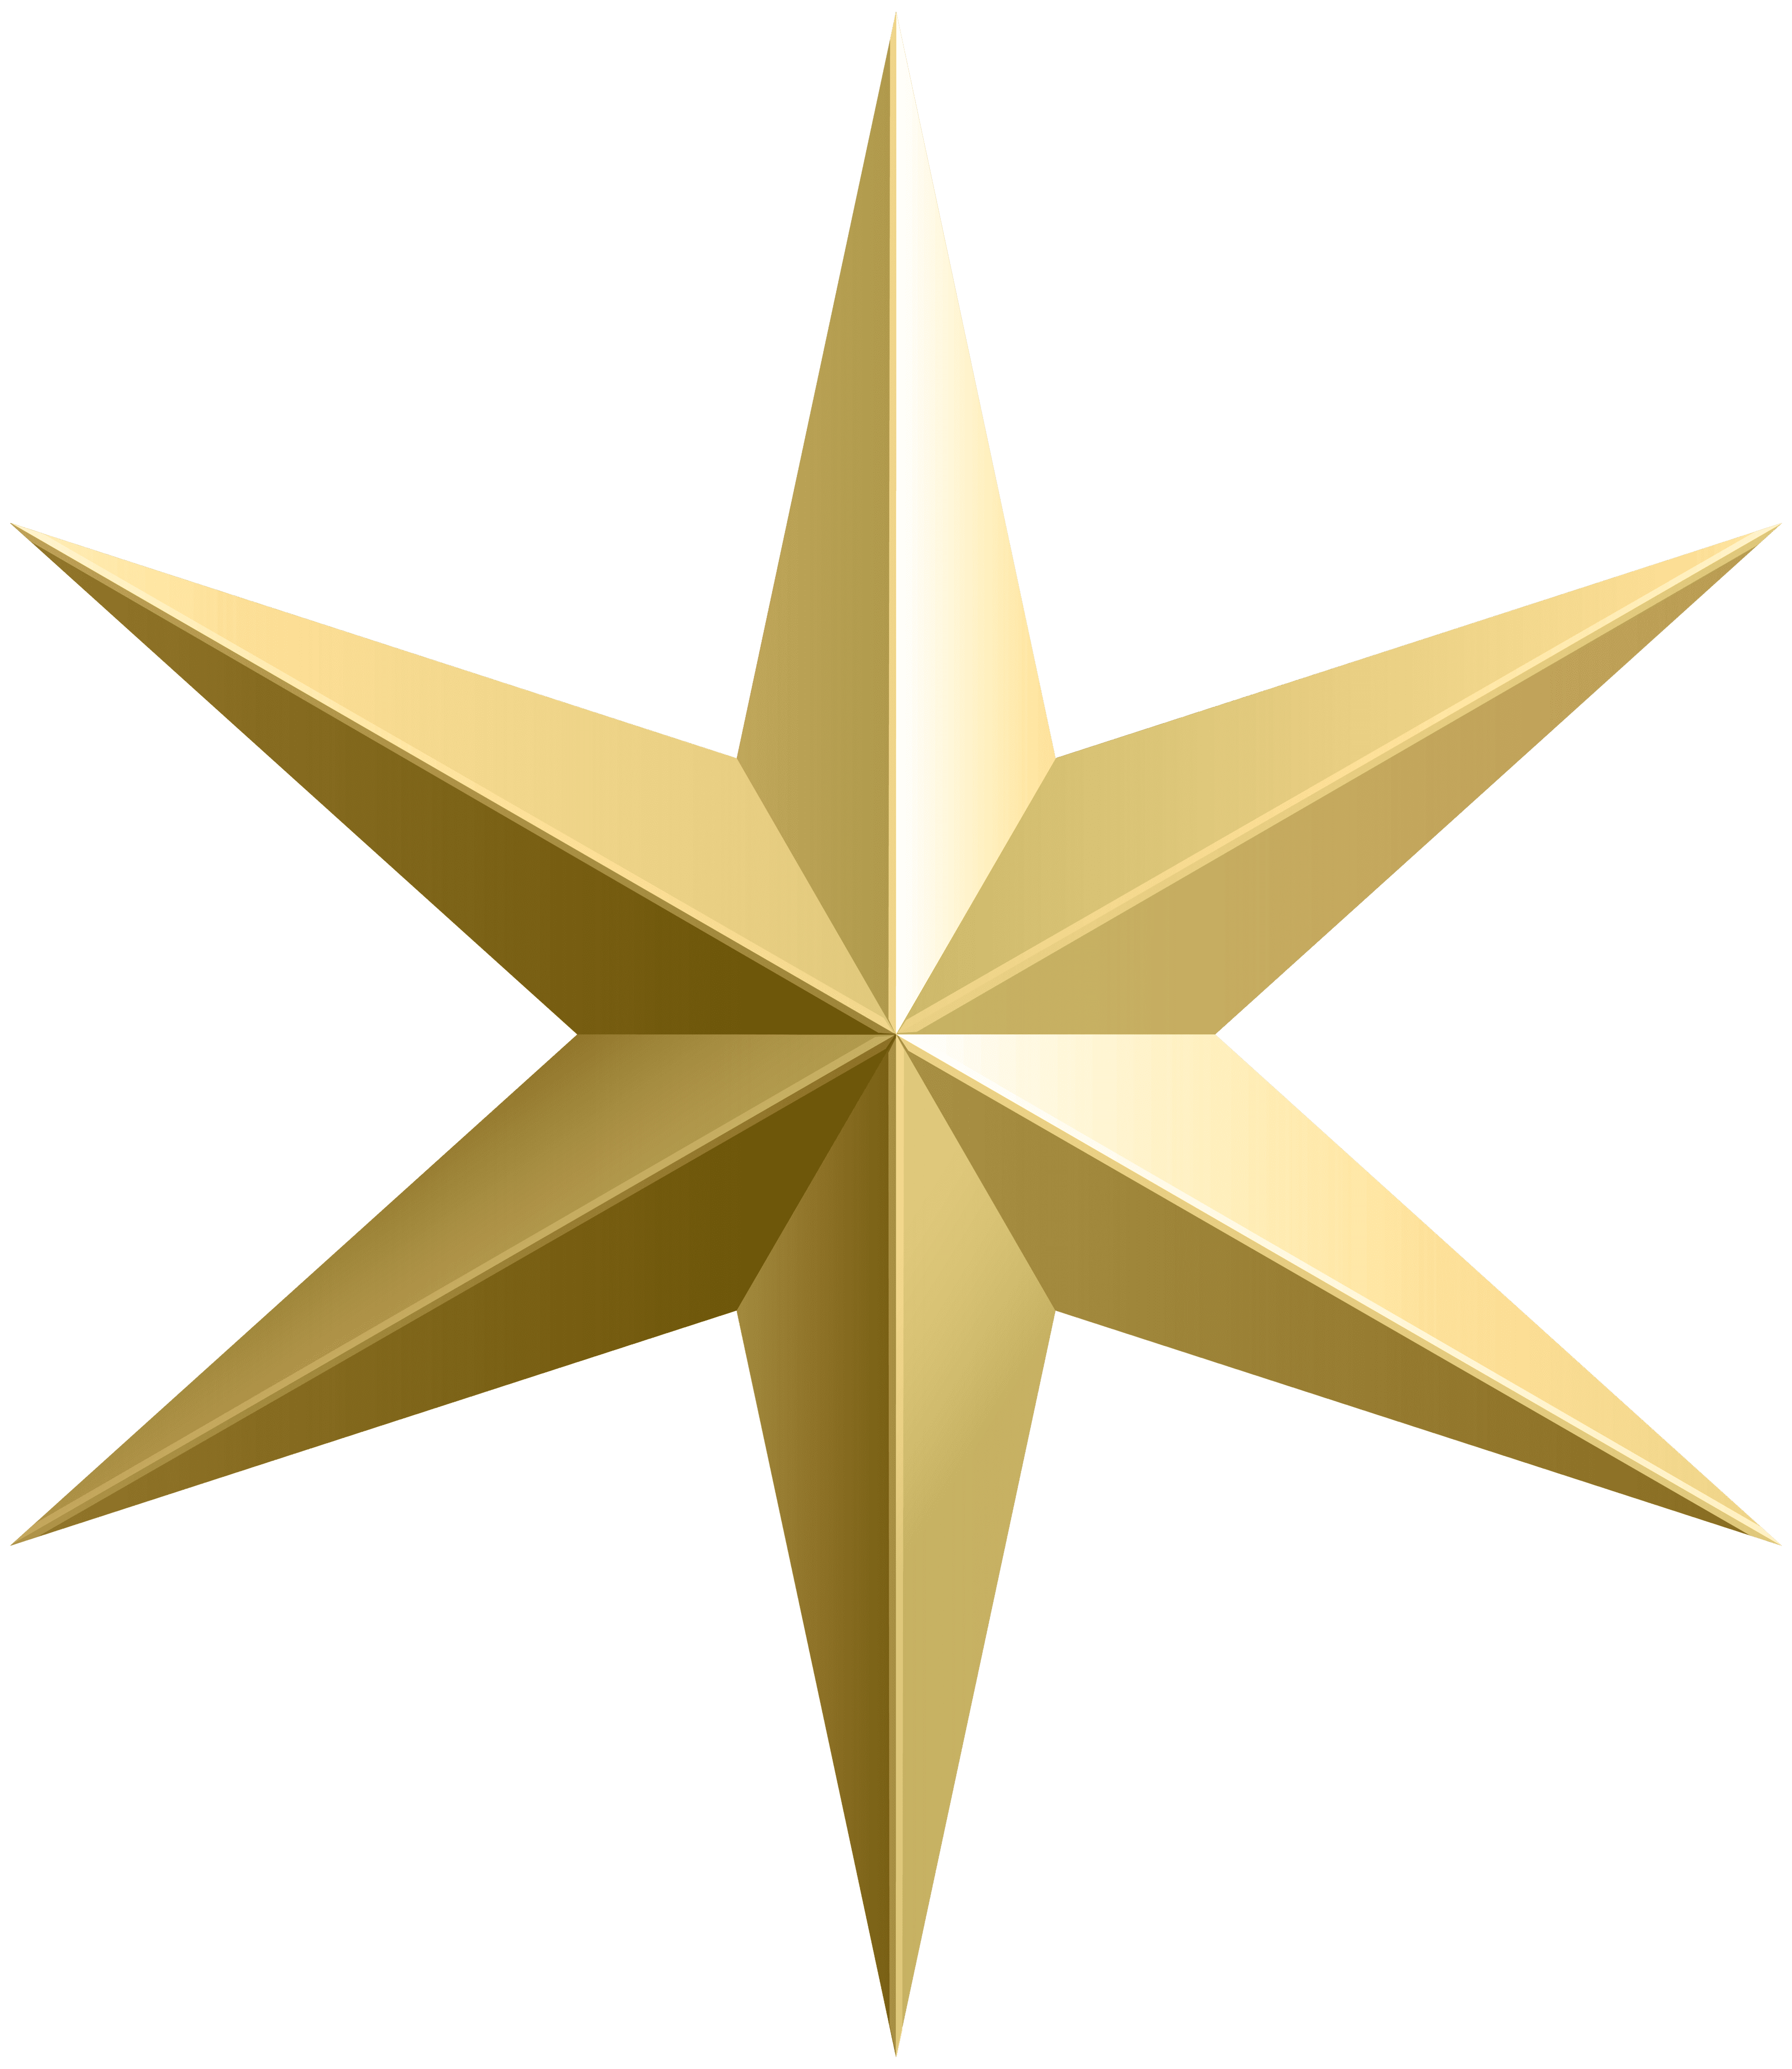 Clipart gold star svg transparent Gold Star Transparent Clip Art Image svg transparent